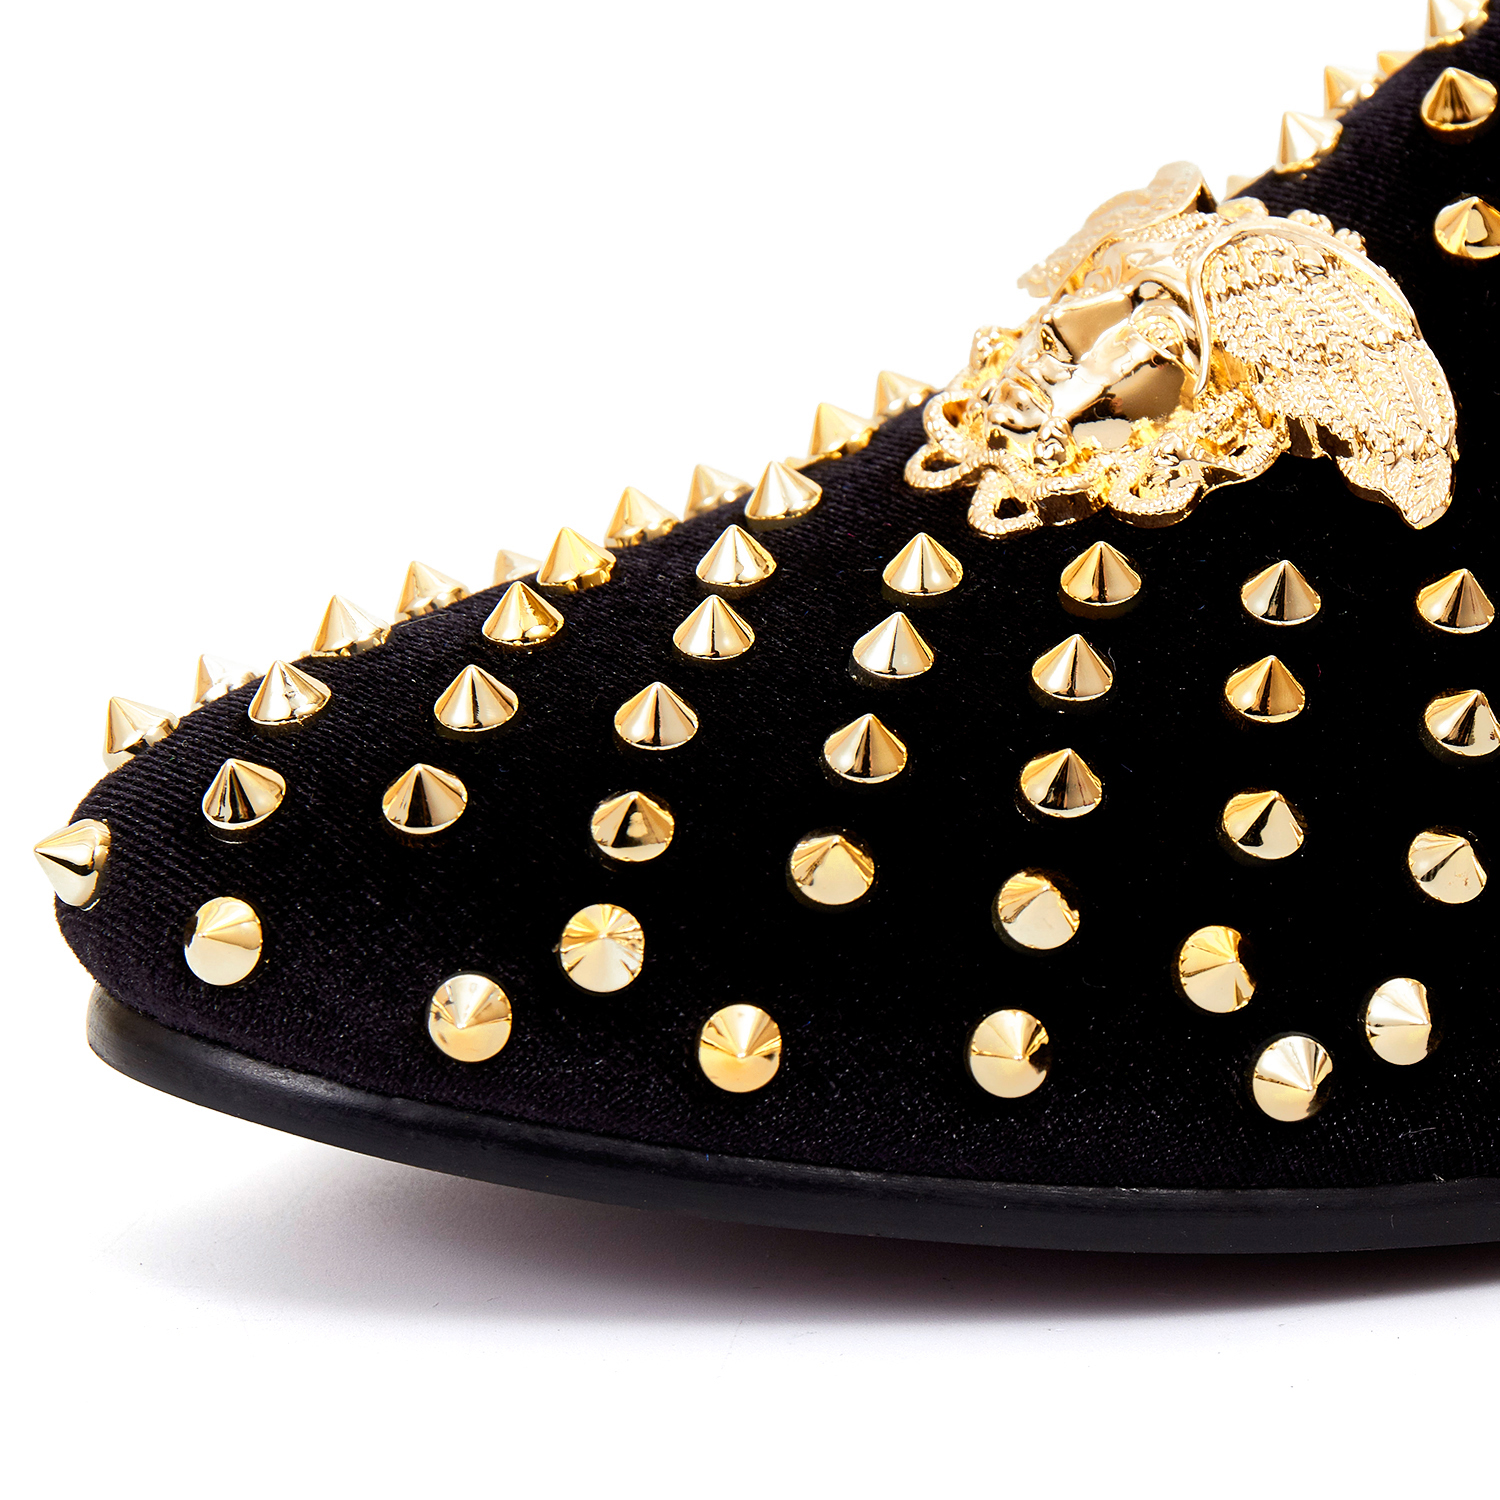 b359f6f40680ad Harpelunde Men Dress Shoes With Spikes Black Velvet Loafers Classic Buckle  Flat Shoes Size 7 14-in Formal Shoes from Shoes on Aliexpress.com